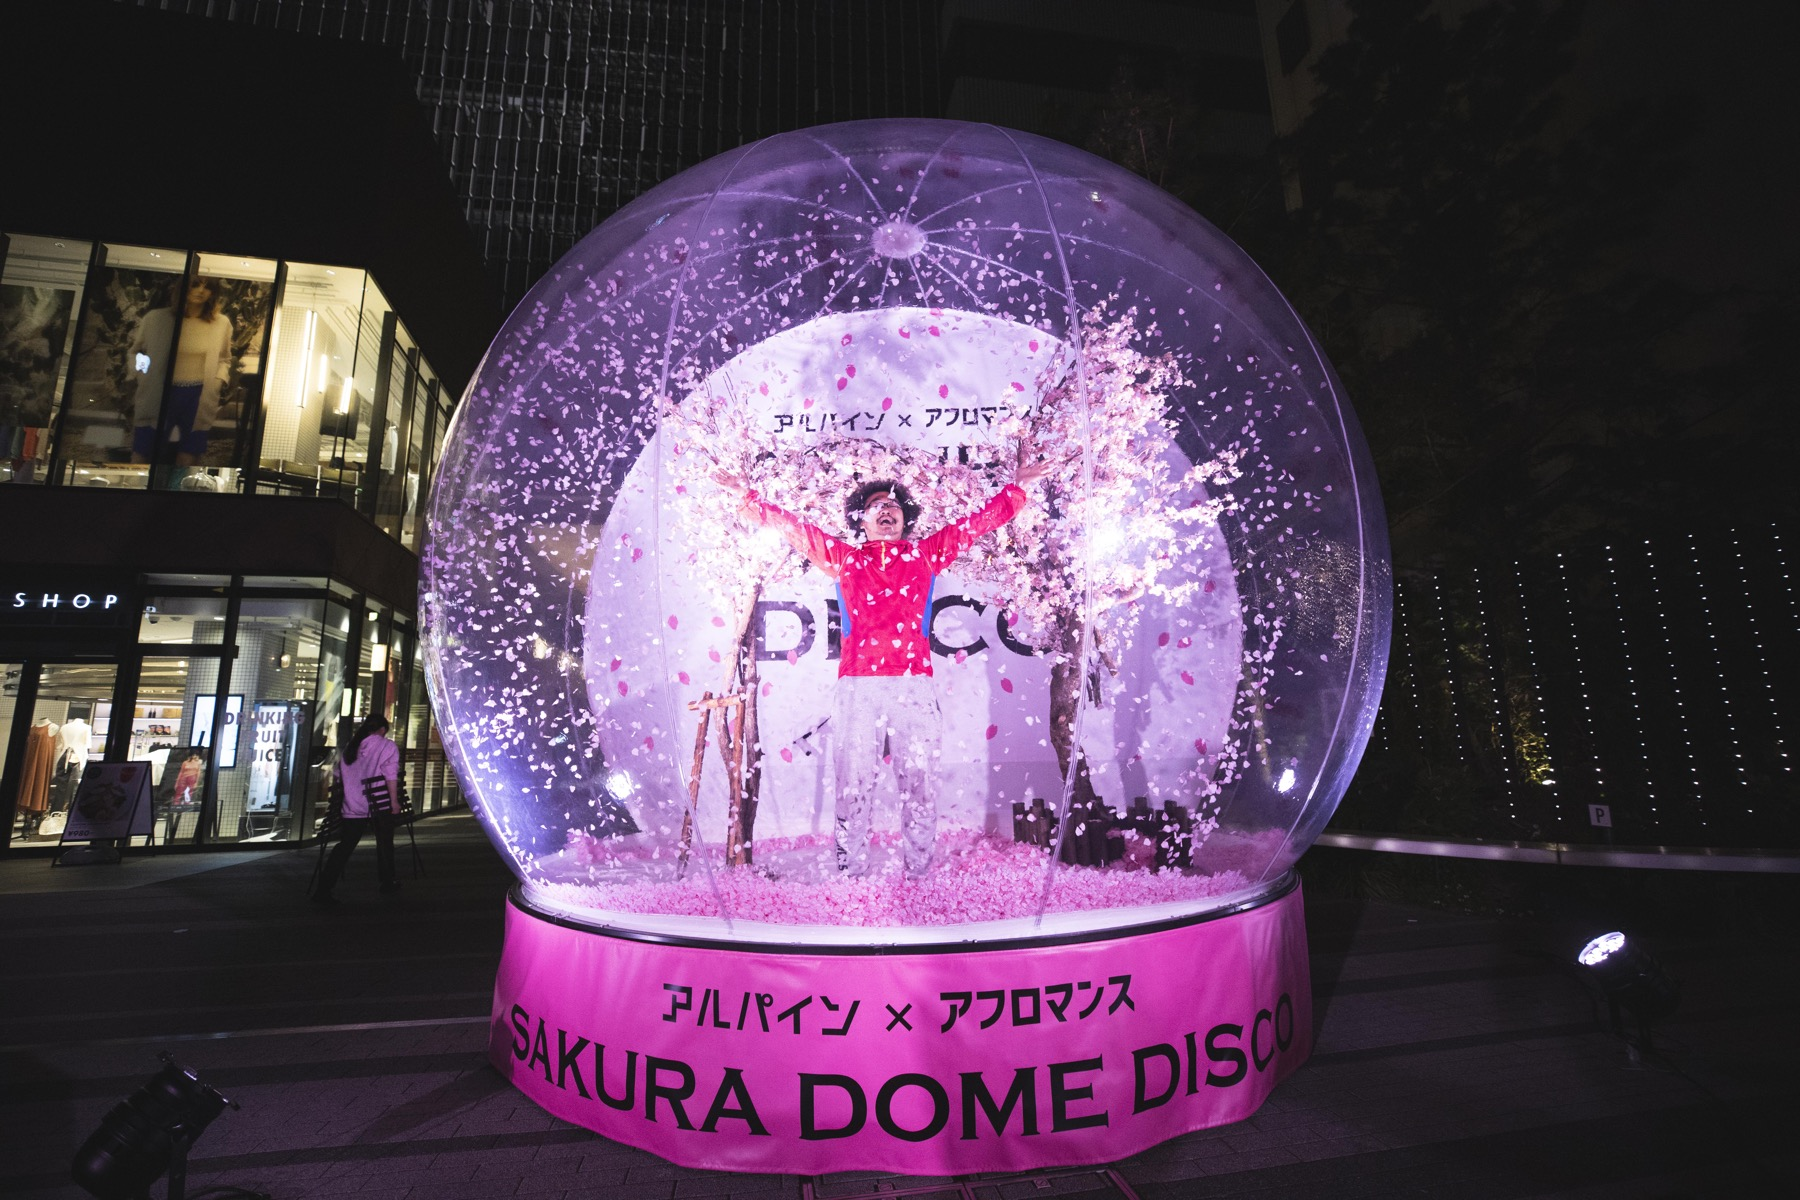 190421_SAKURA DOME DISCO_top20 - 20 / 20